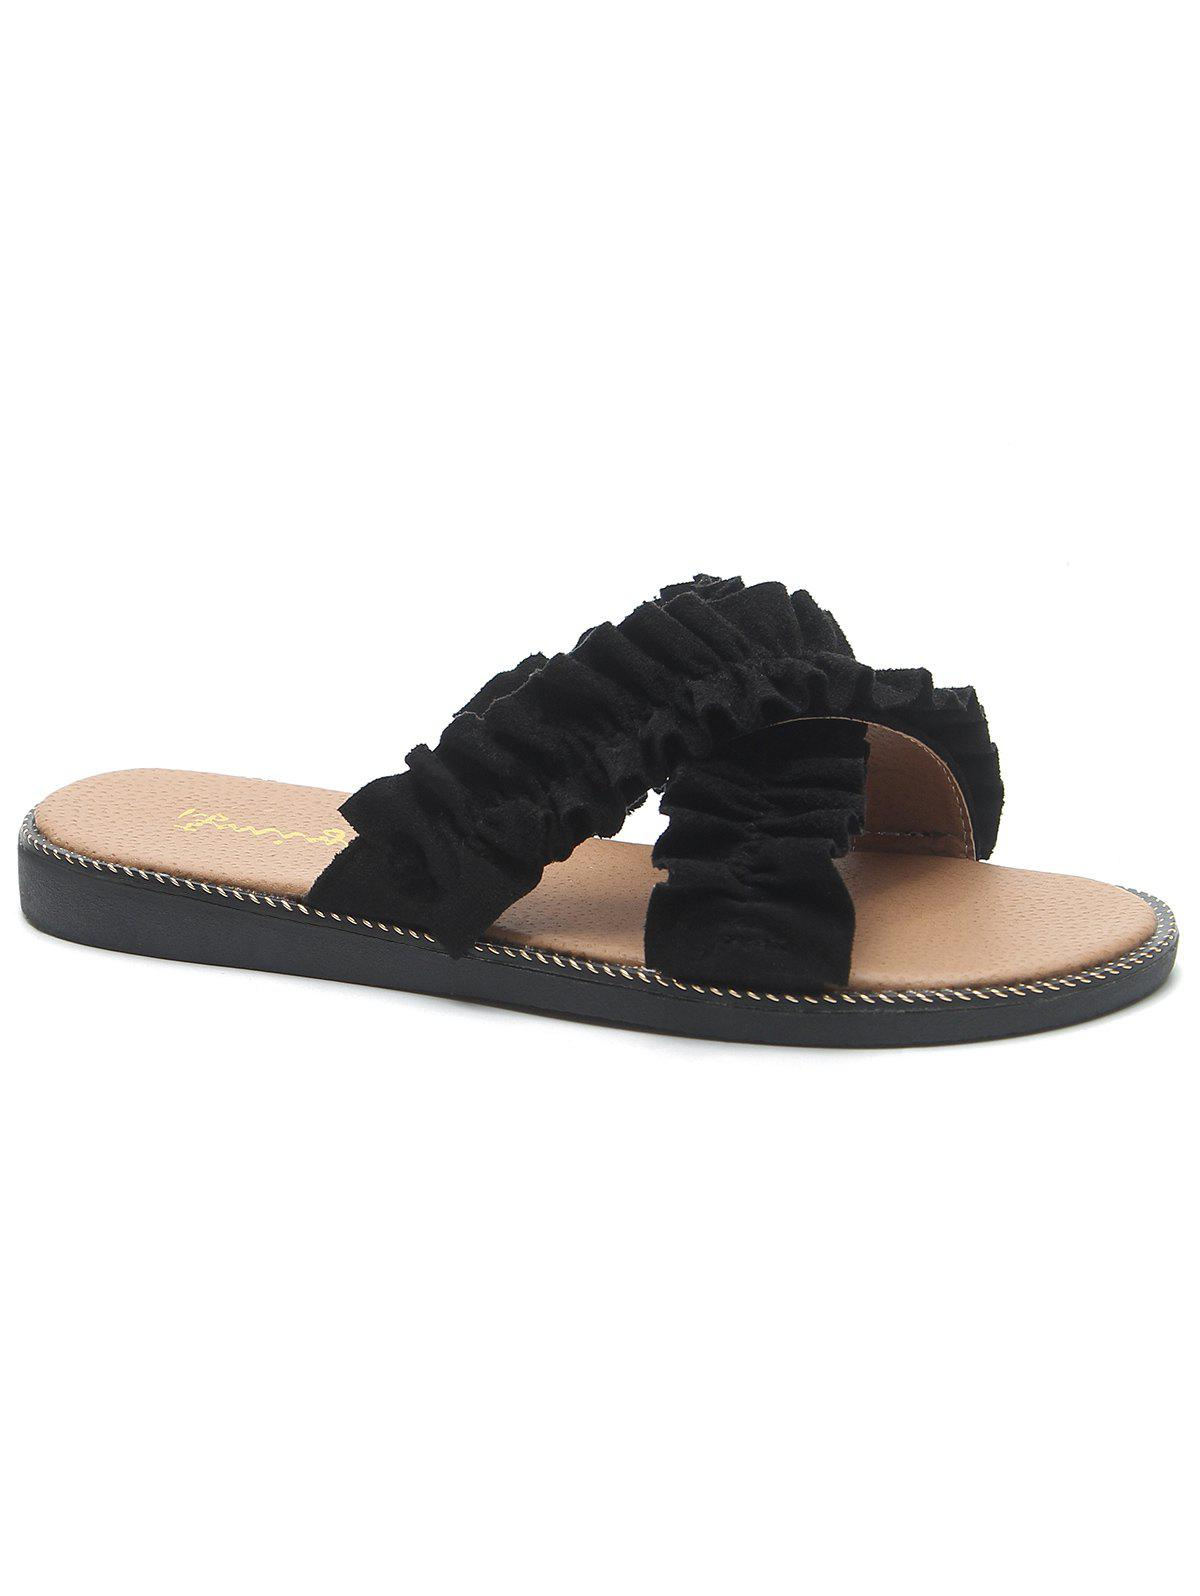 Criss Cross Flat Heel Ruffled Suede Slippers - BLACK 38